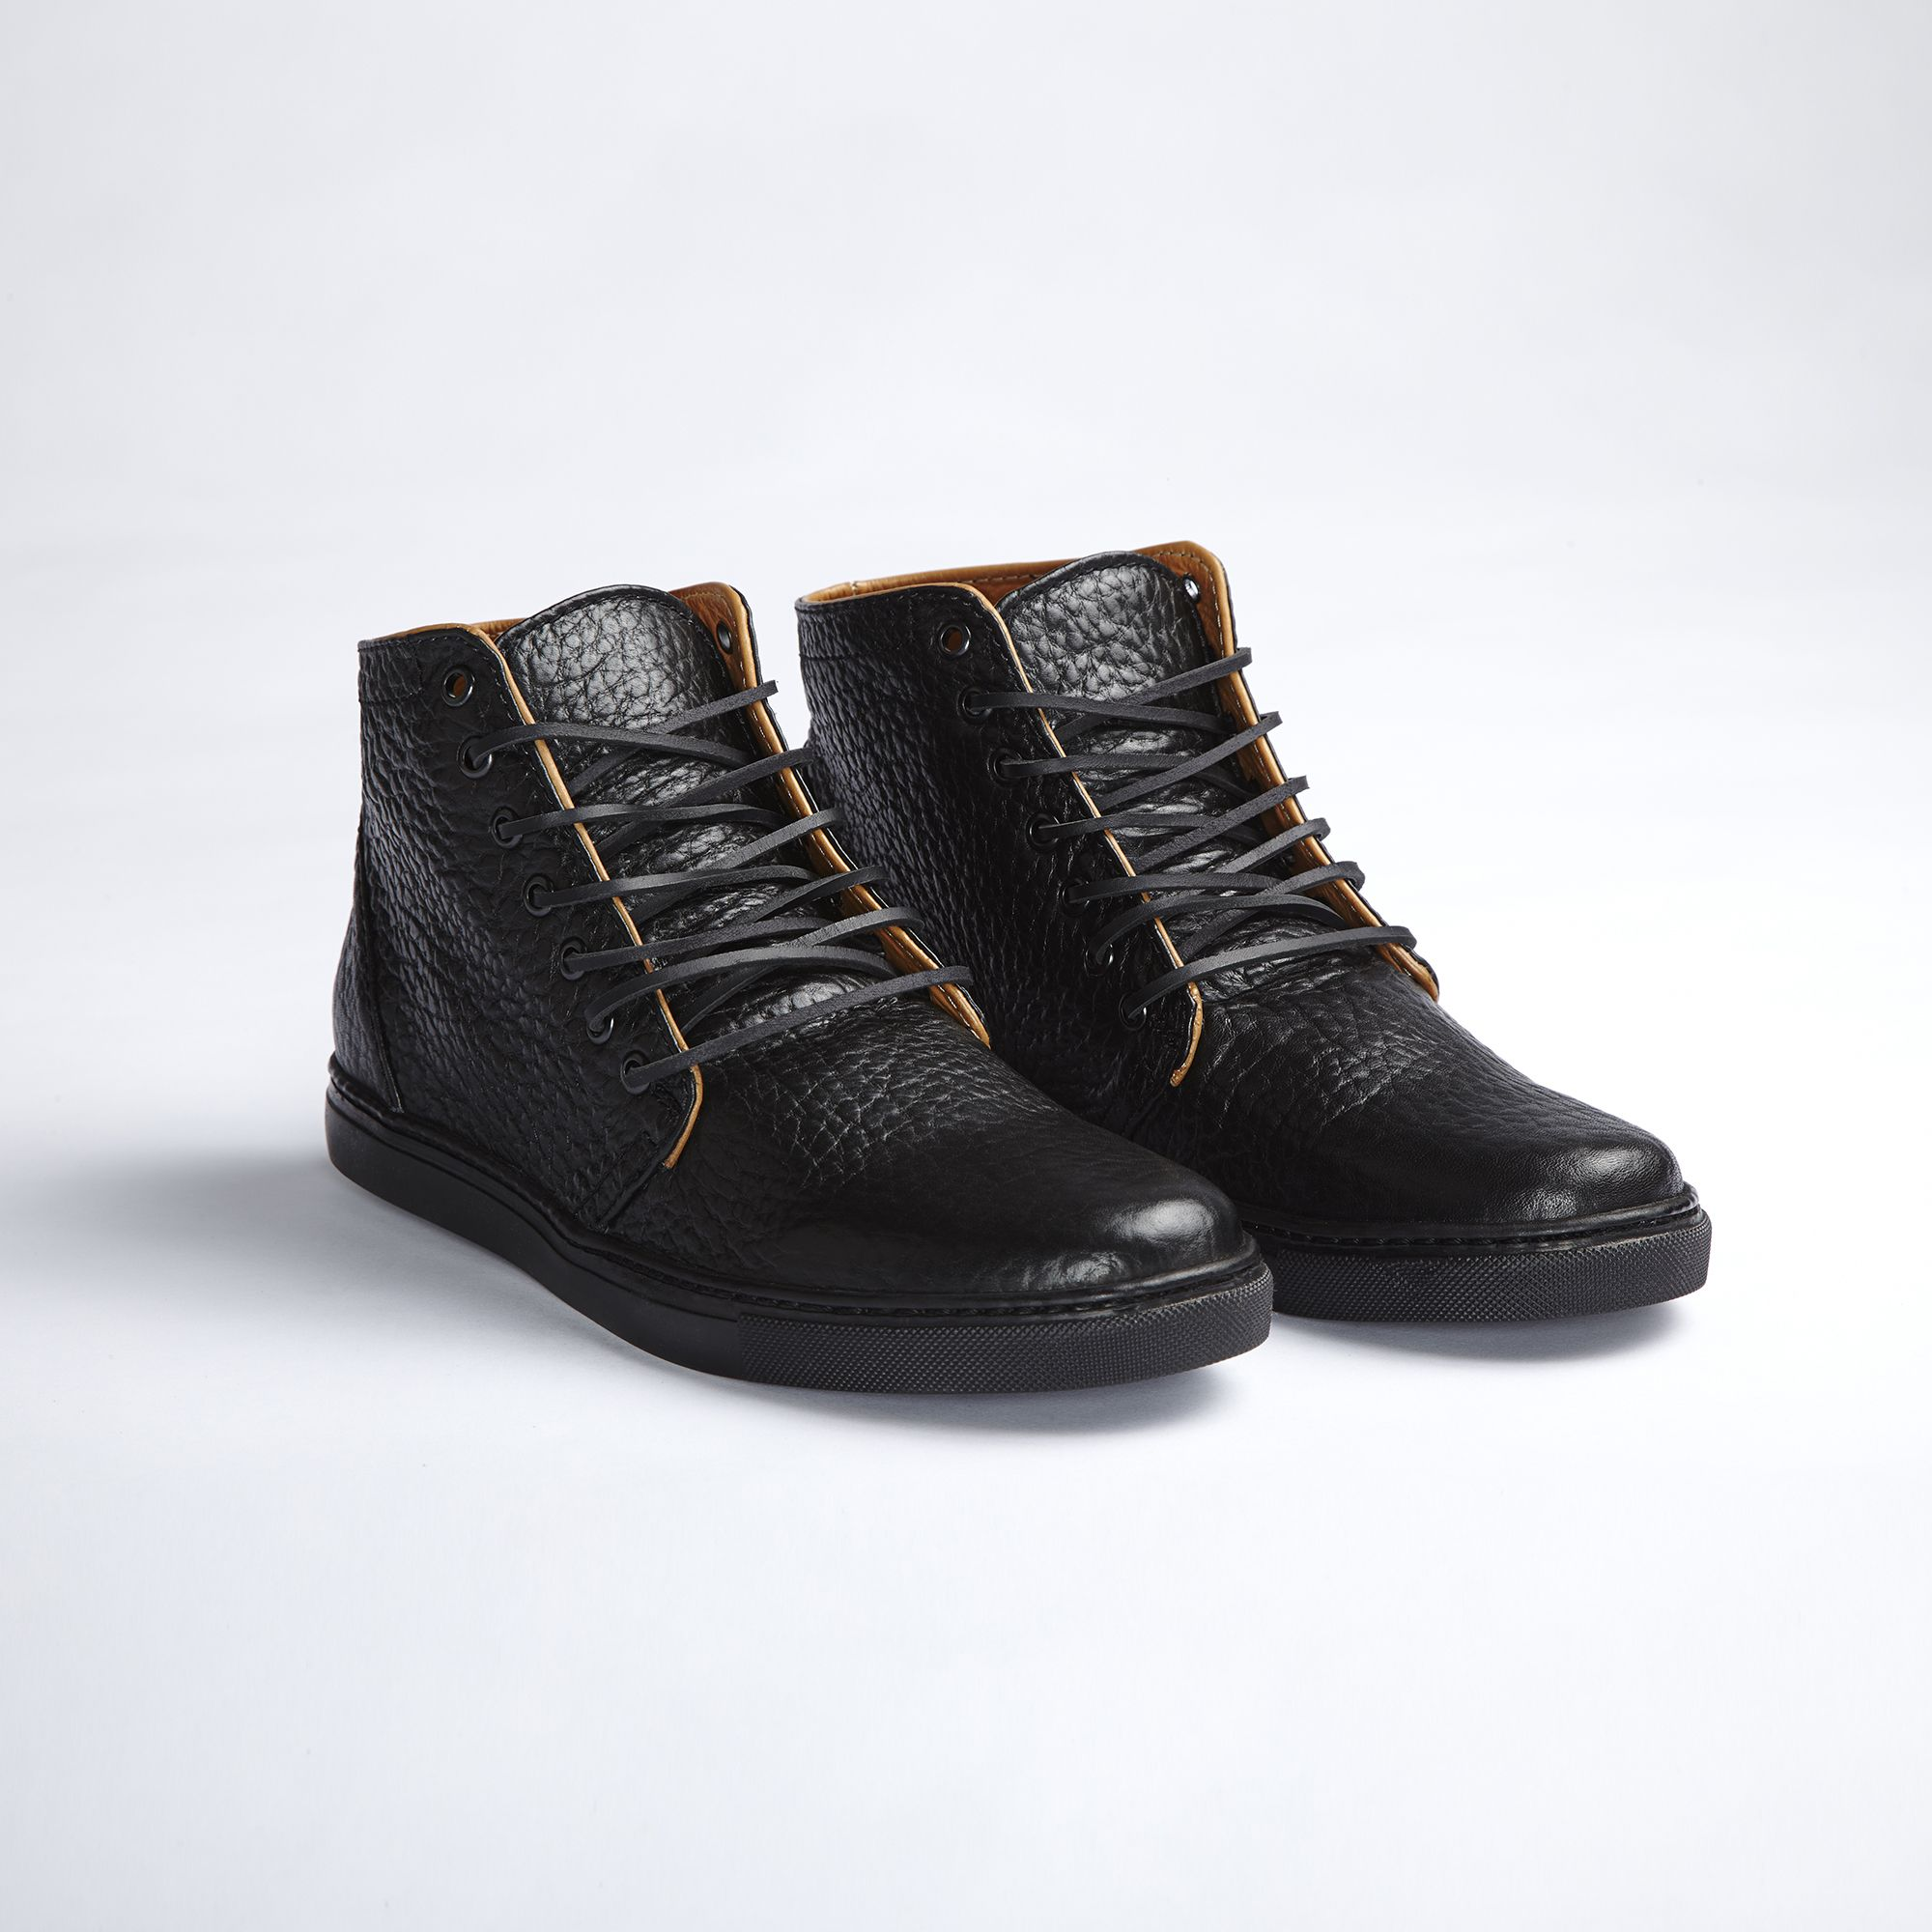 Black High $275 (With images) | Top shoes, Black shoes